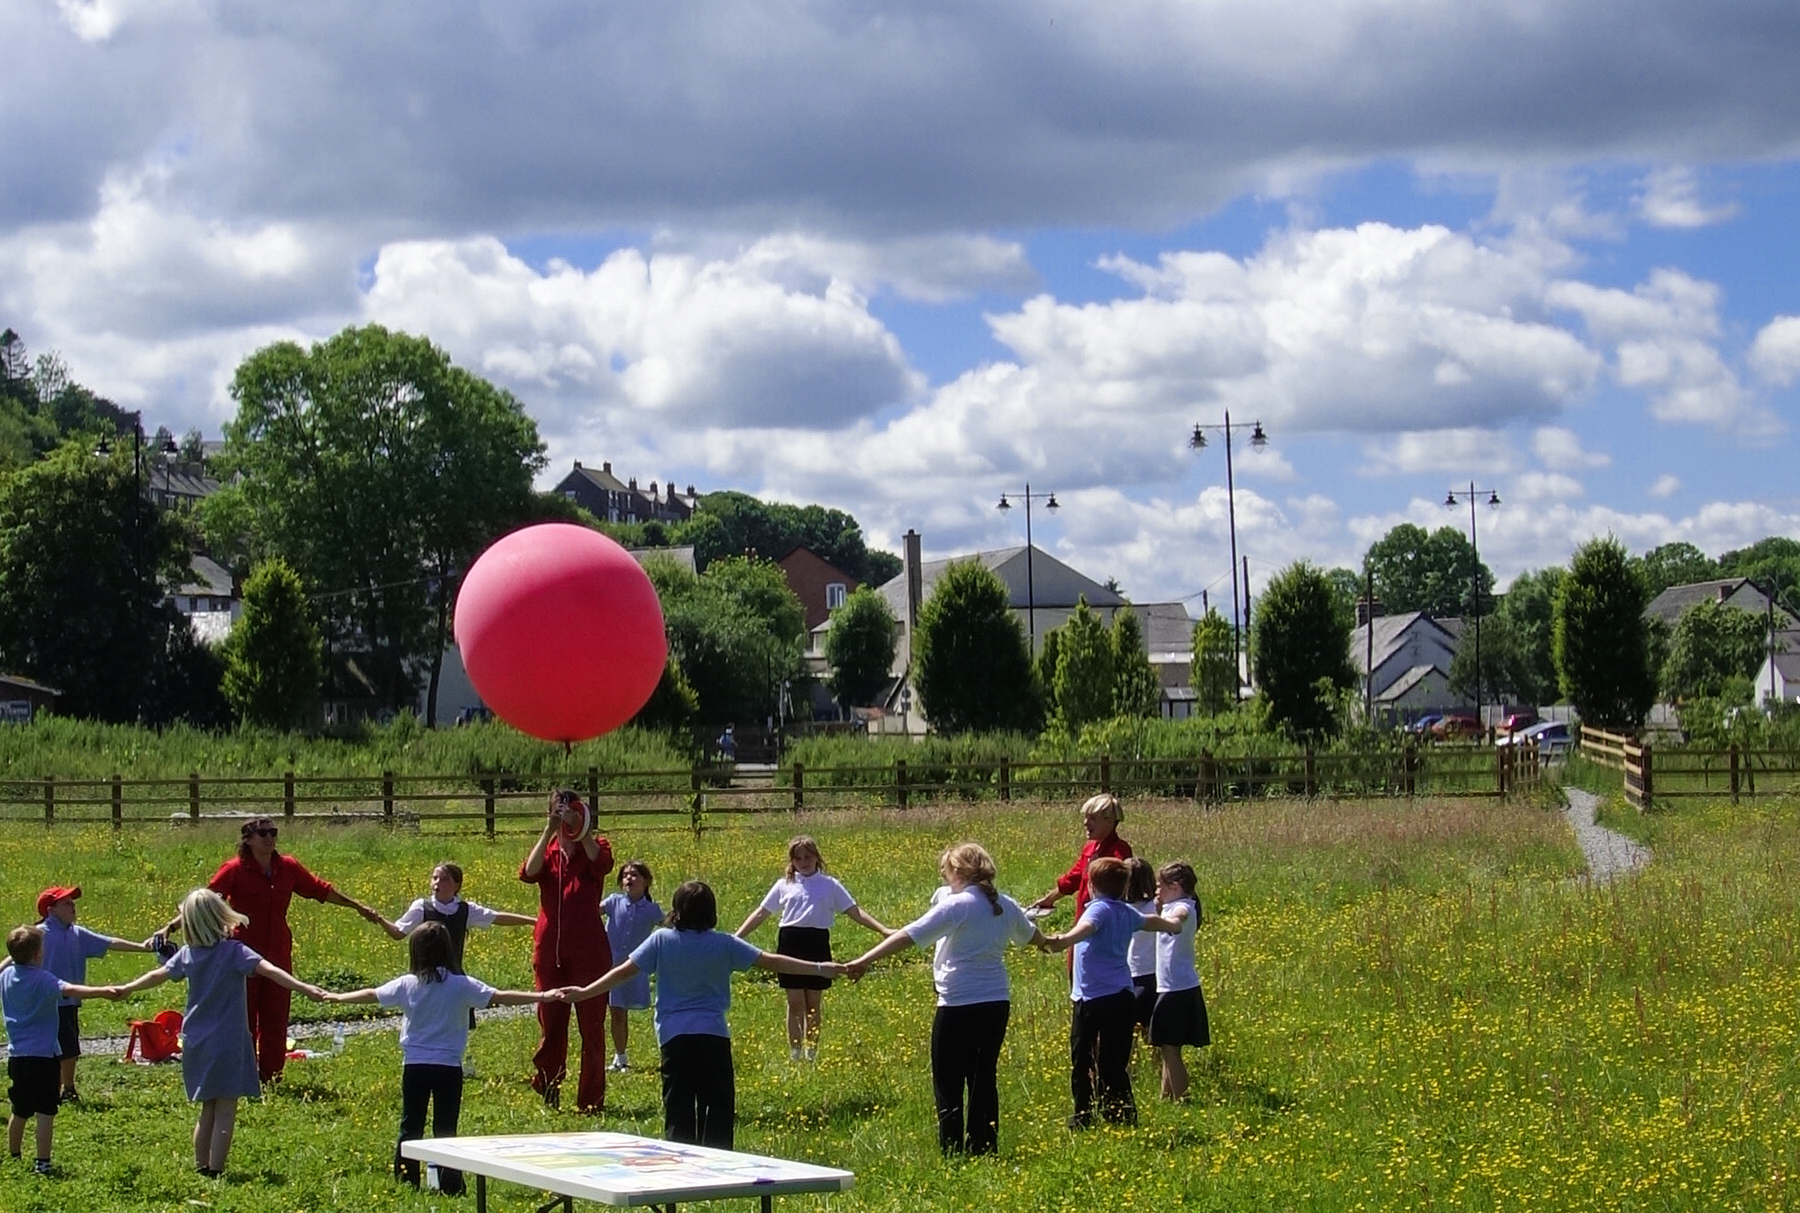 <i><b>Image:</b> School Balloon Workshop led by Camp Little Hope, 2014. </i>